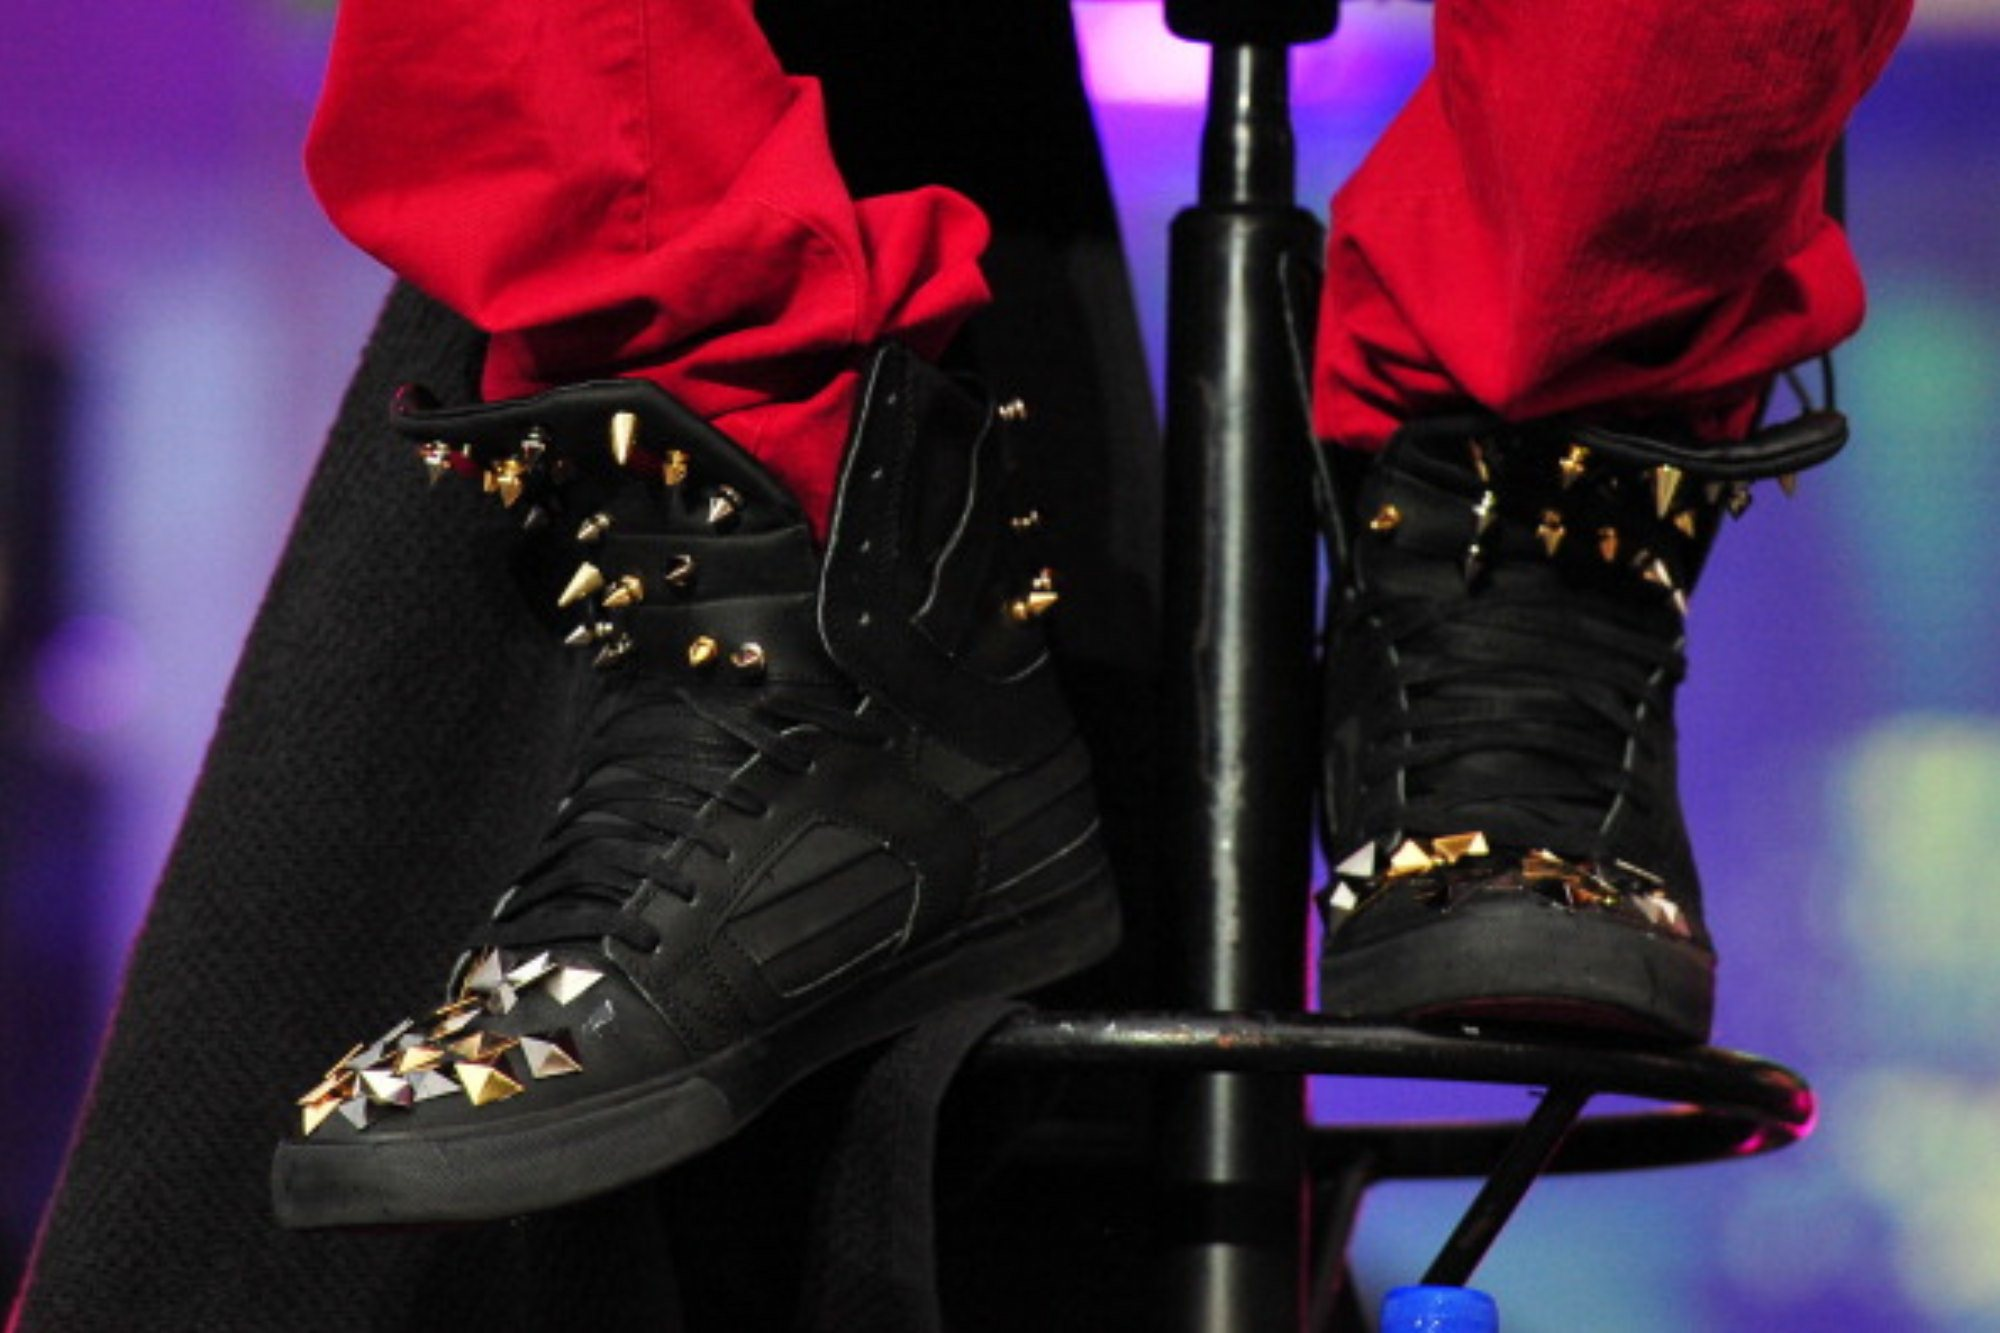 justin bieber images bieber look my shoes hd wallpaper and